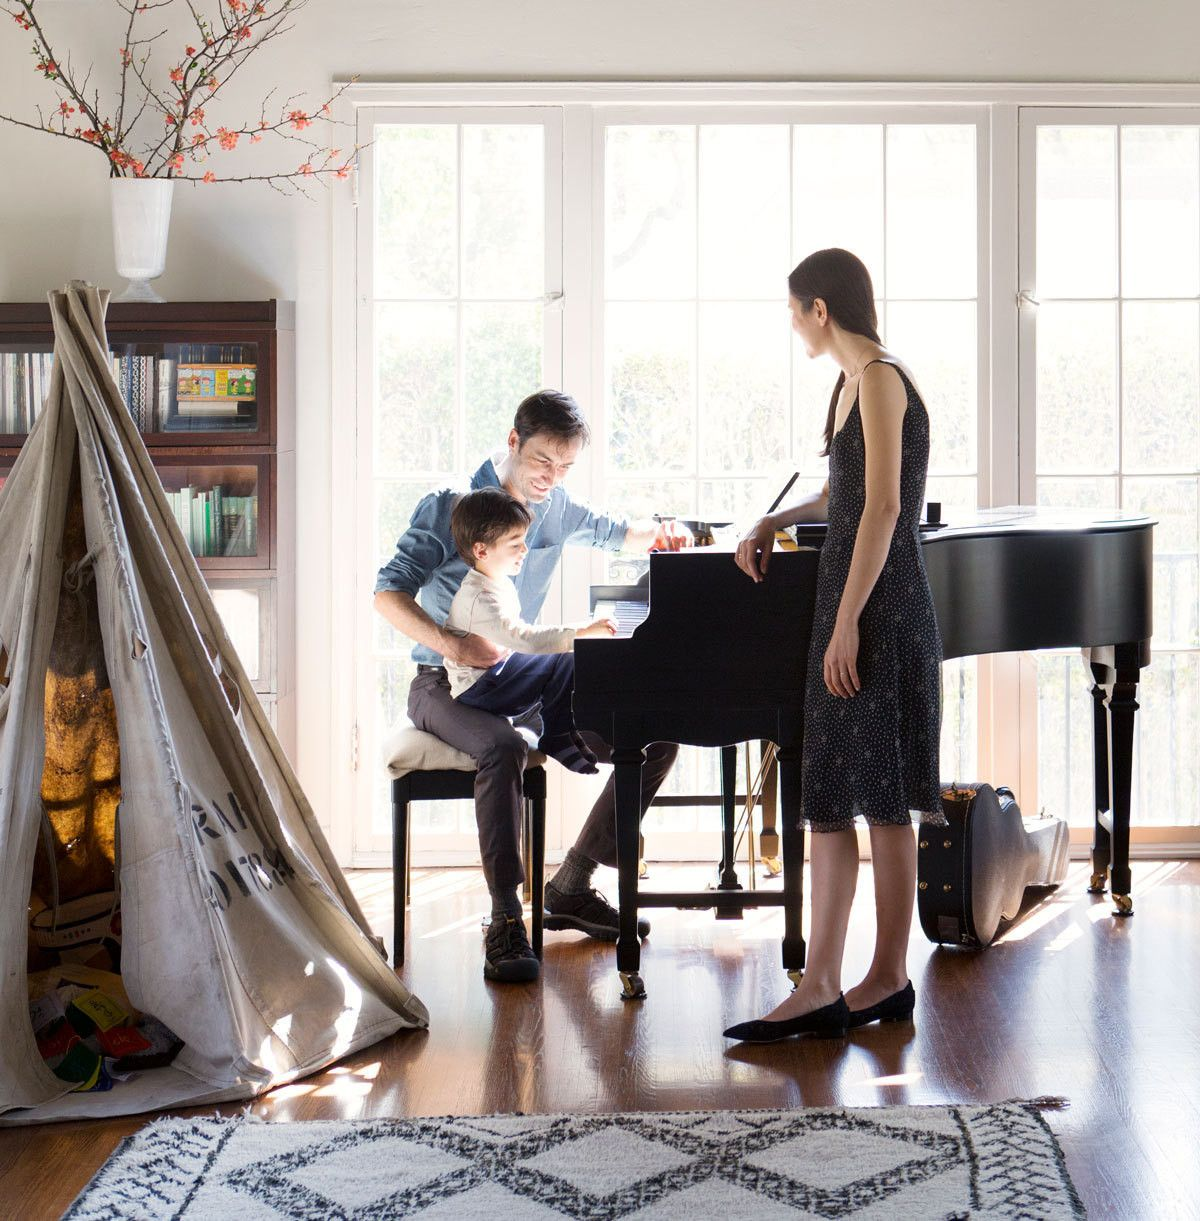 Pitch Perfect Andrew Bird And Katherine Tsina At Home Home Living Room Photos Family Room